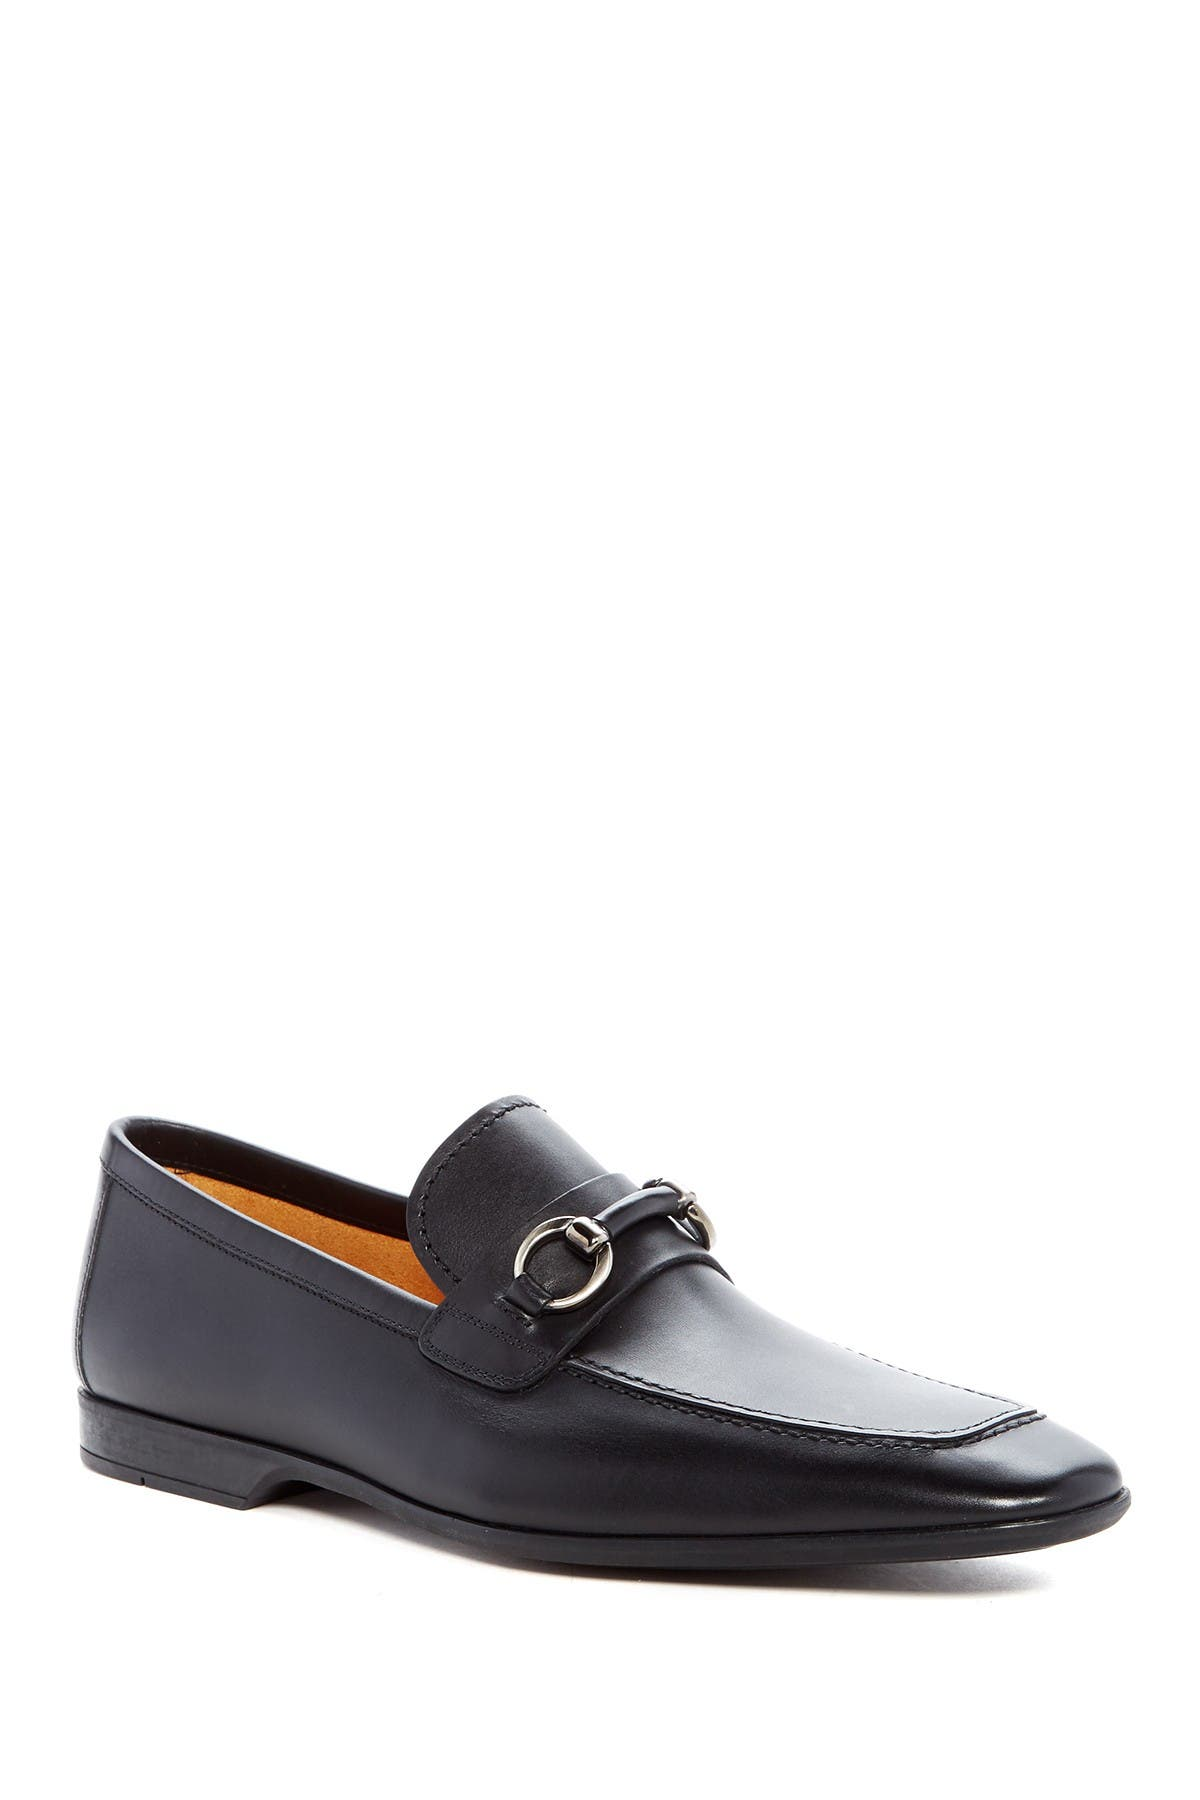 Image of Magnanni Voto Leather Bit Loafer